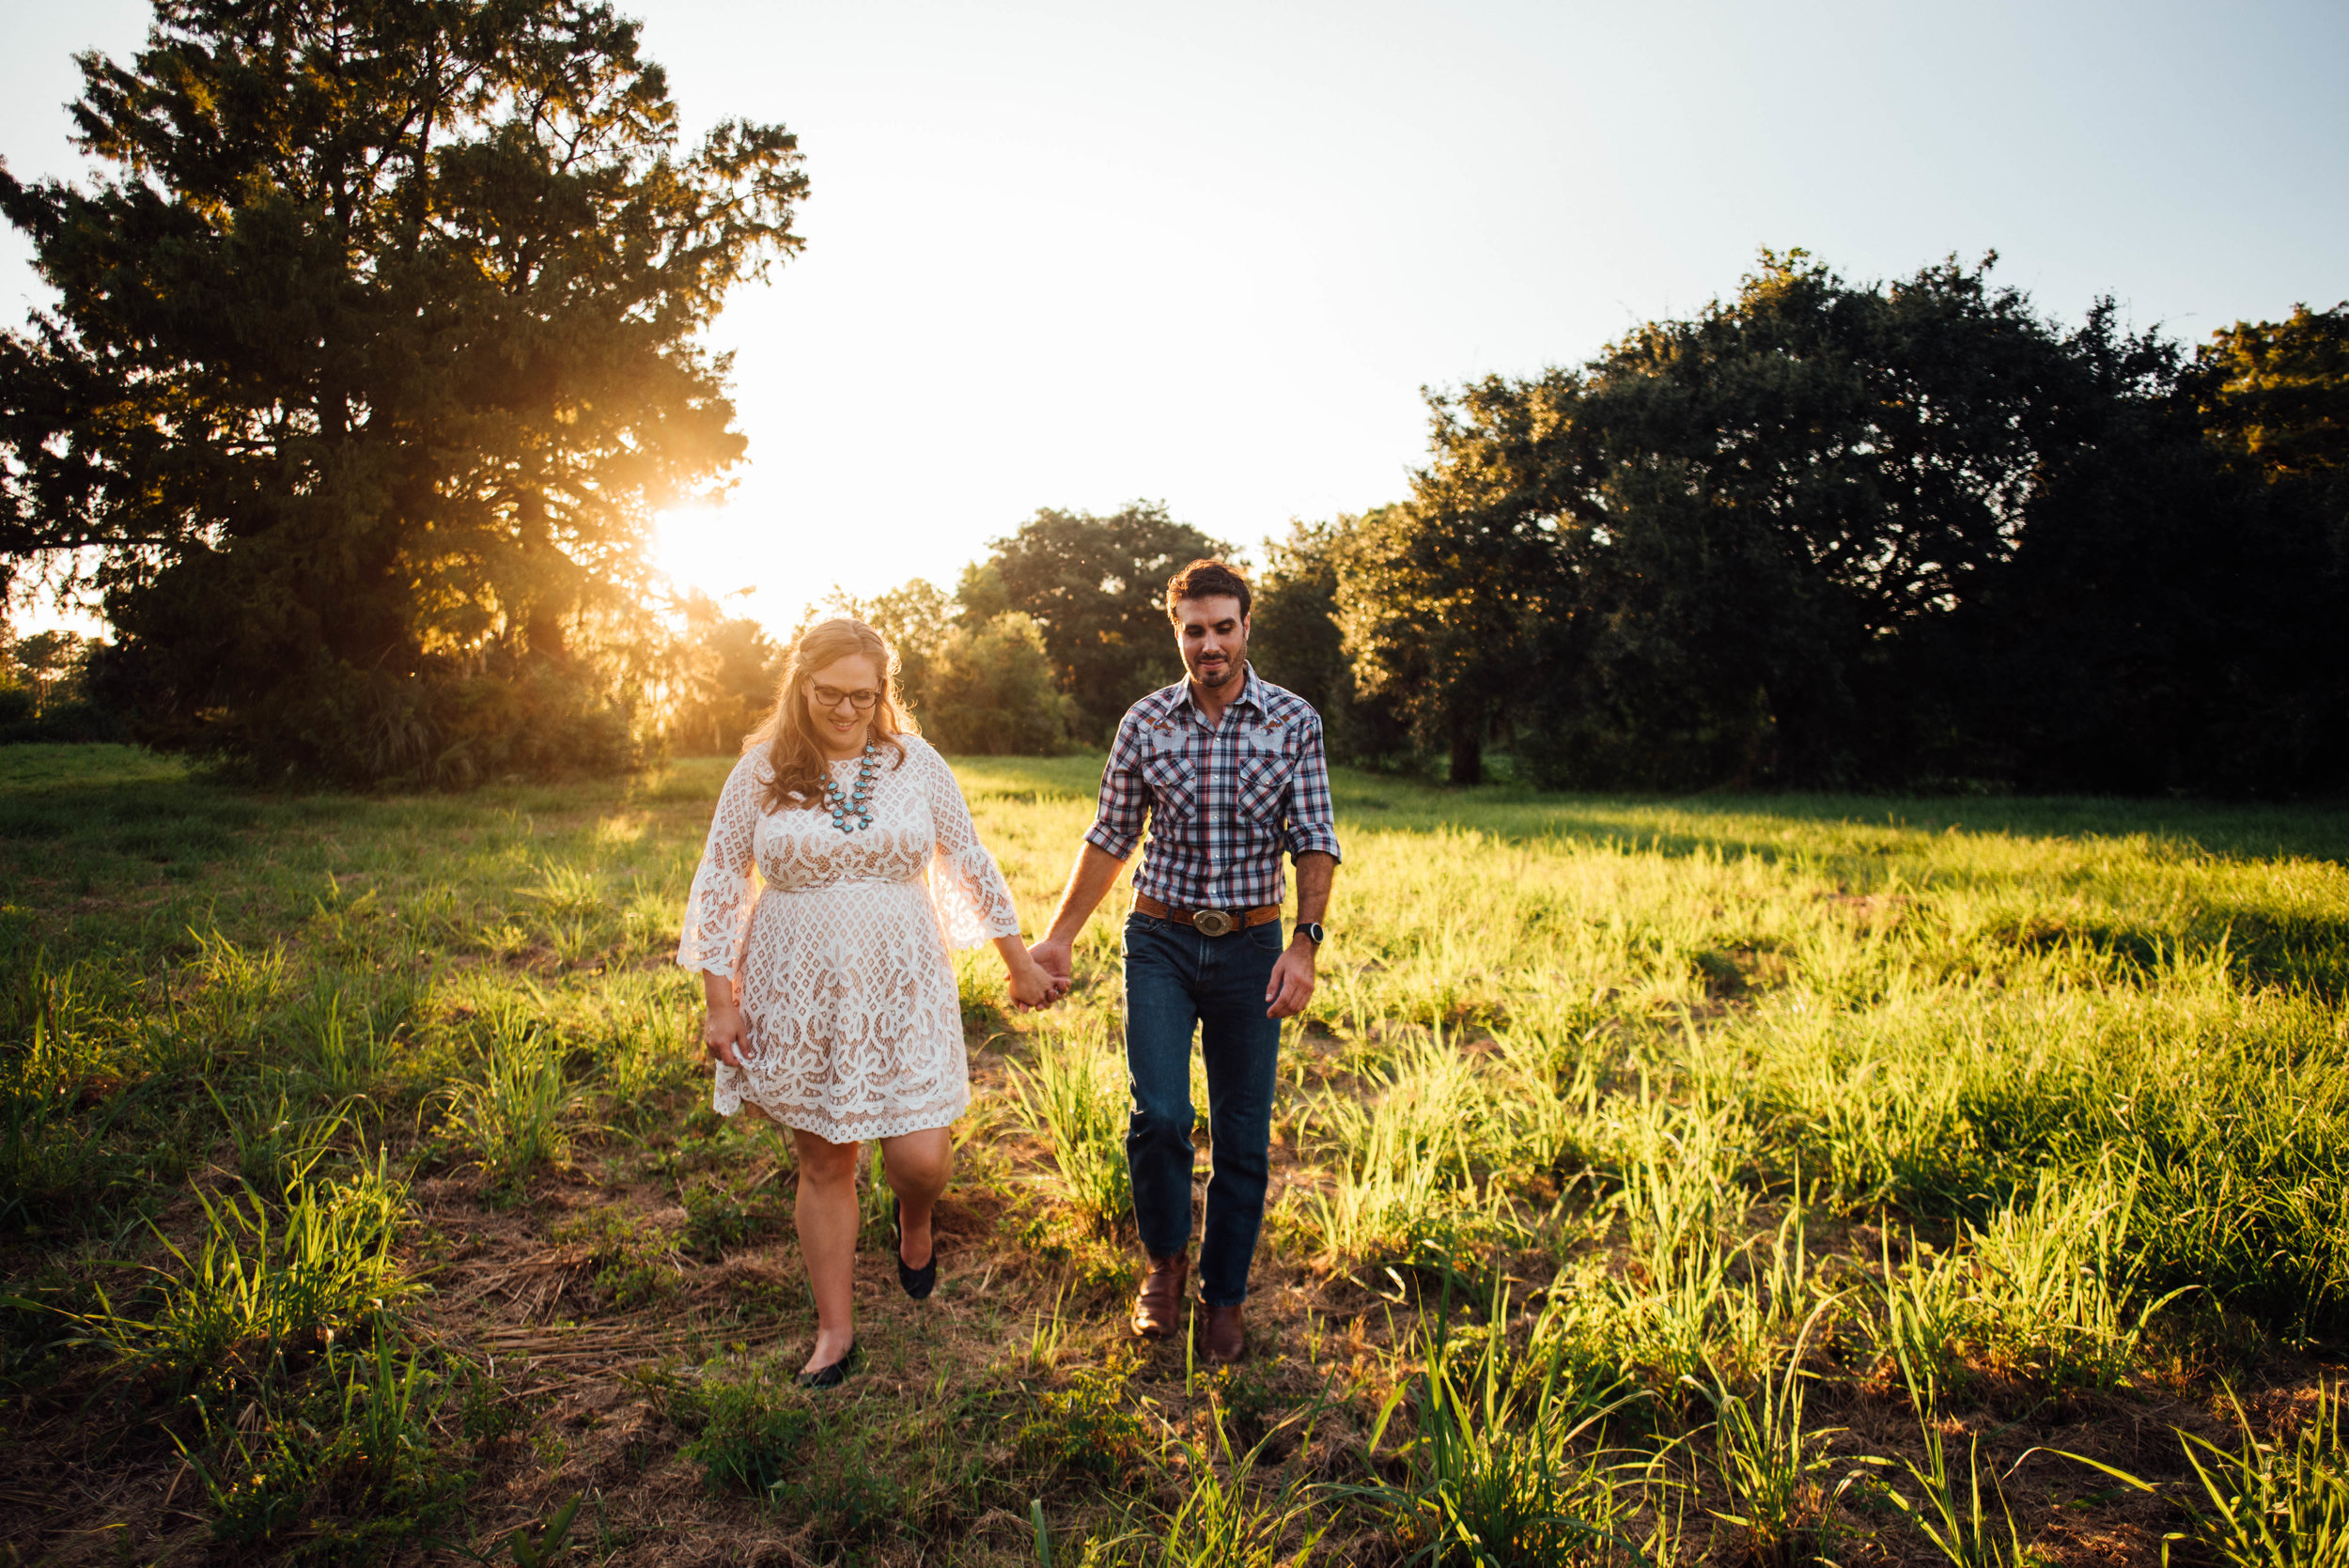 Jordan + Kent_French-Quarter-New-Orleans-City-Park-Engagement-Photos_Gabby Chapin_Print_0132.jpg